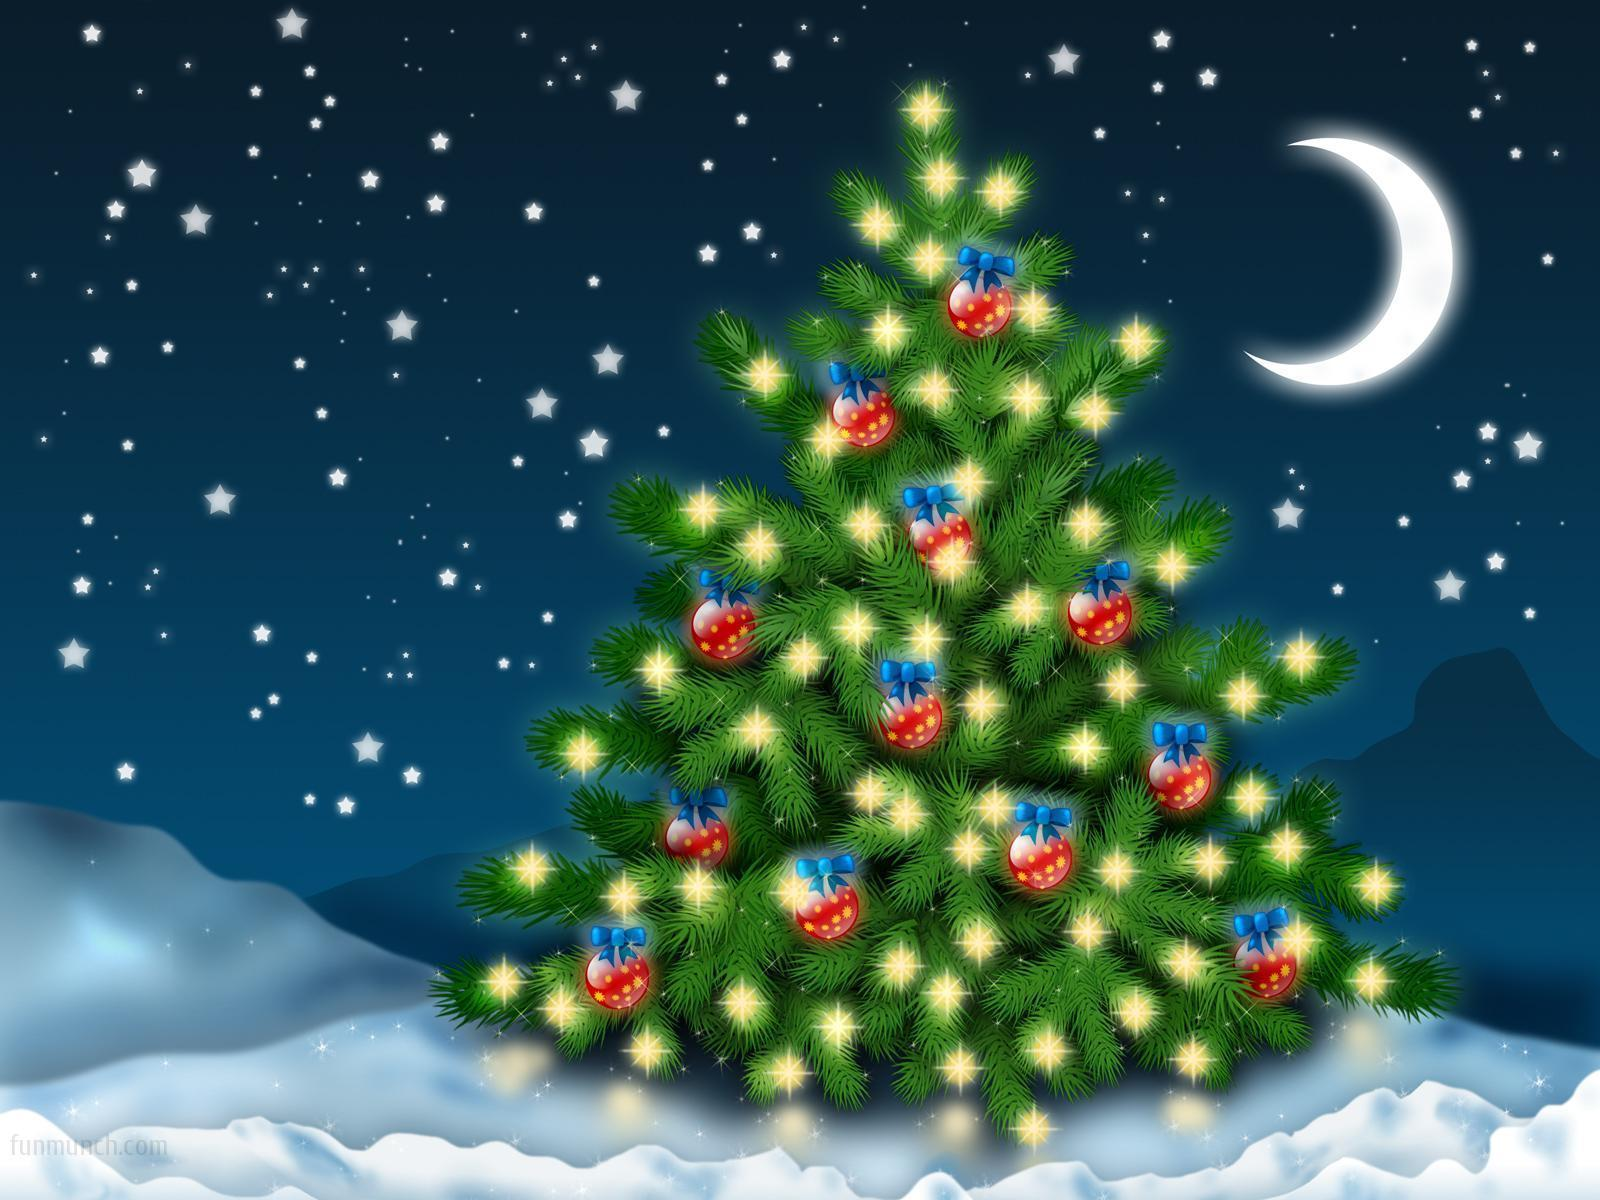 Christmas Lights Wallpaper : Christmas Lights Wallpapers HD Wallpapers ,Backgrounds ,Photos ,Pictures, Image ,PC